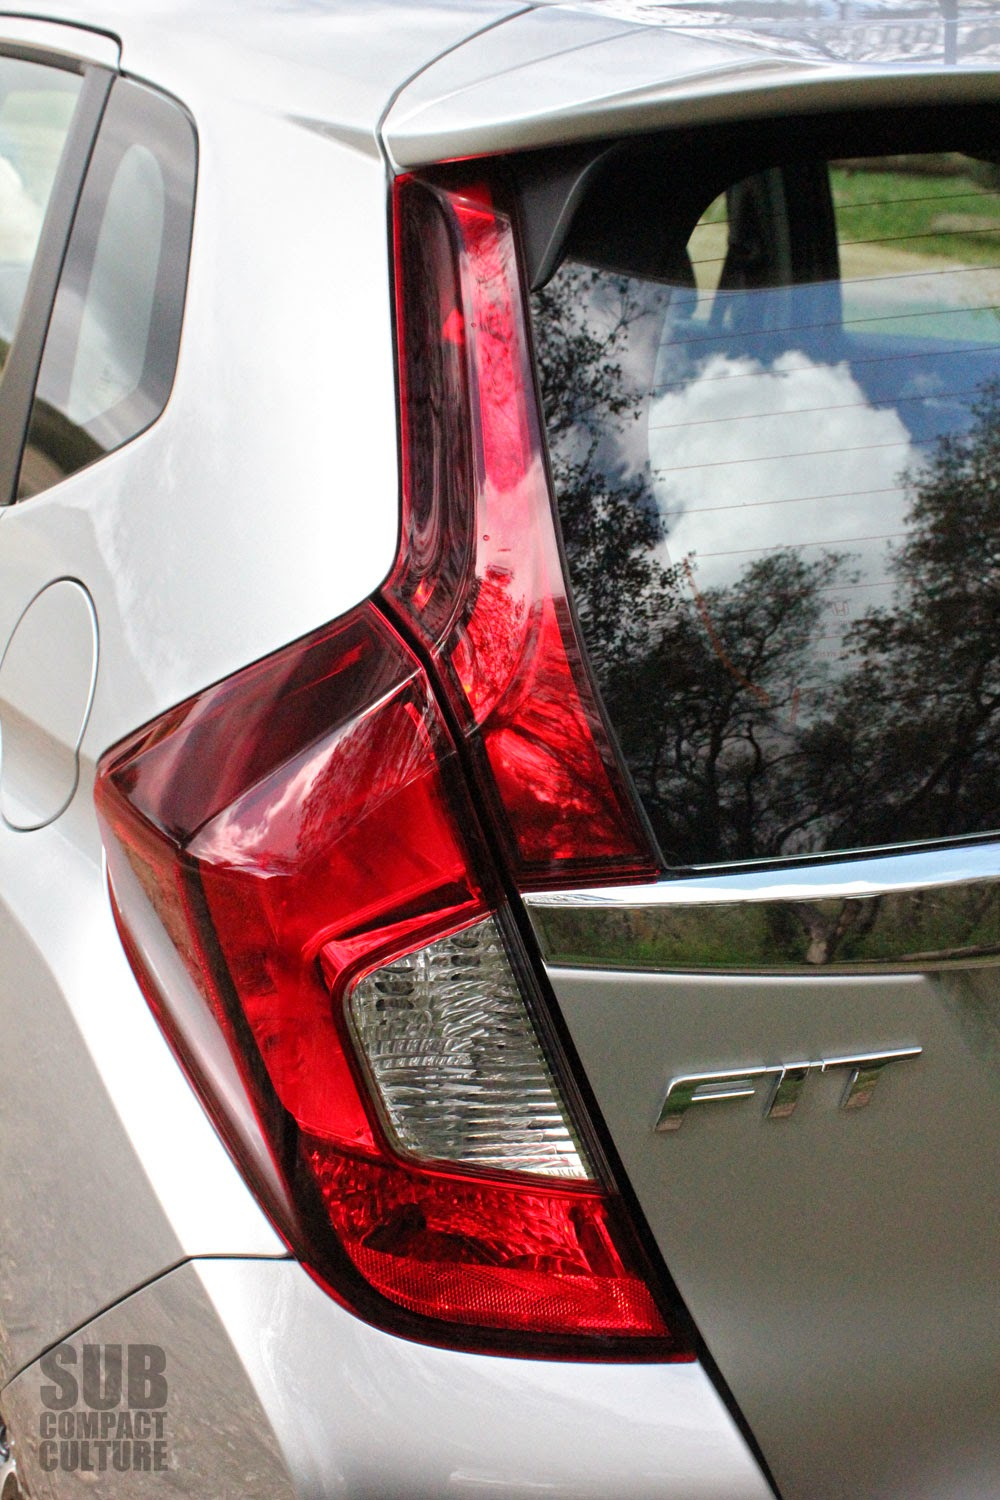 2015 Honda Fit taillight